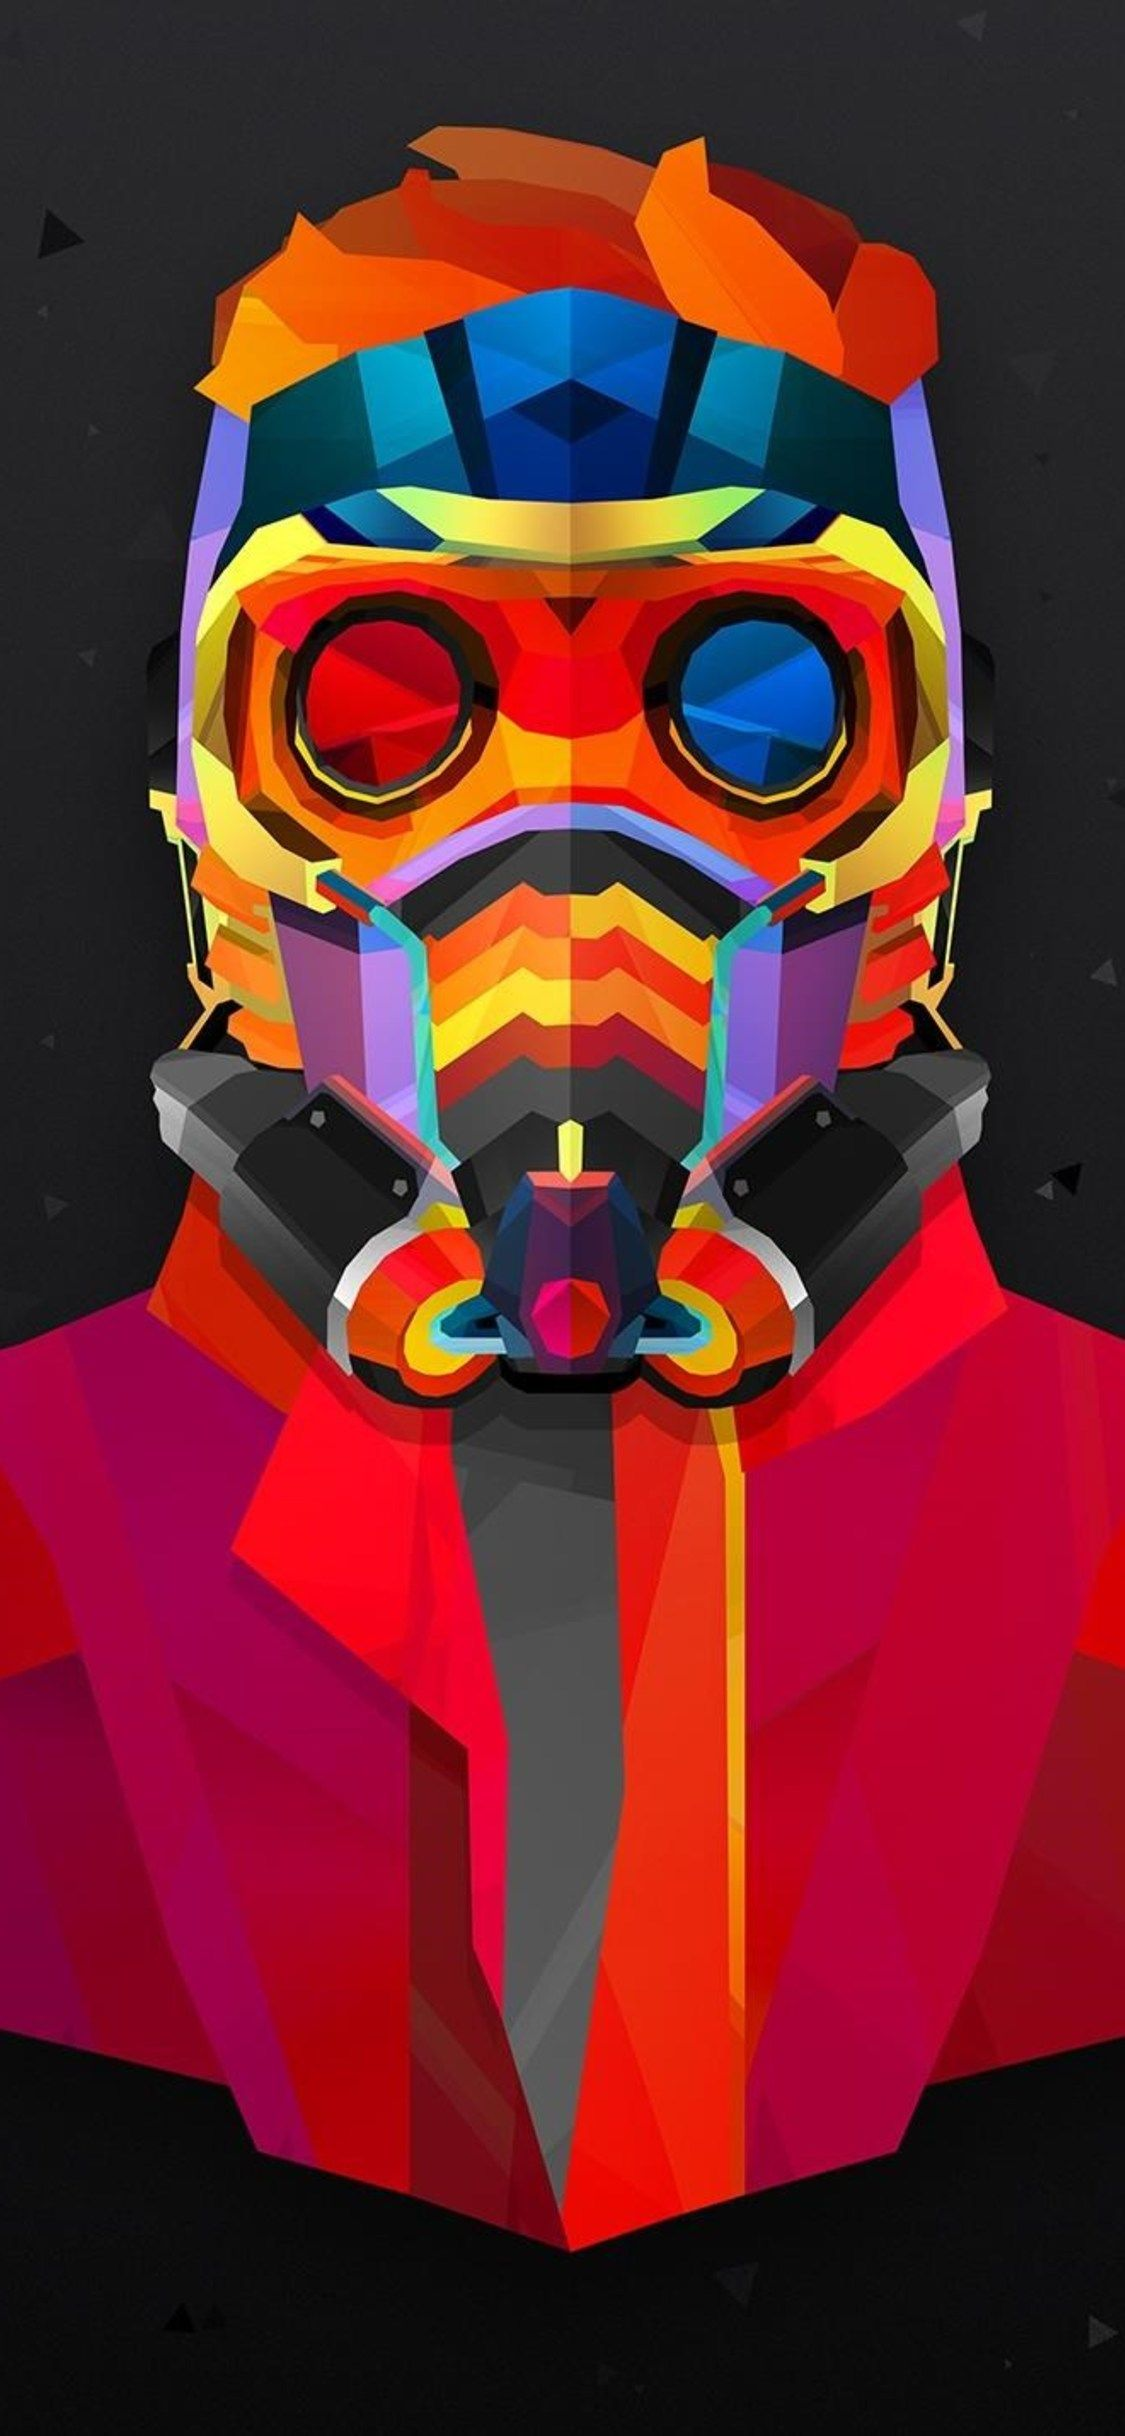 1125x2436 1125x2436 Star Lord Colorful Abstract Iphone XS,Iphone 10 ...